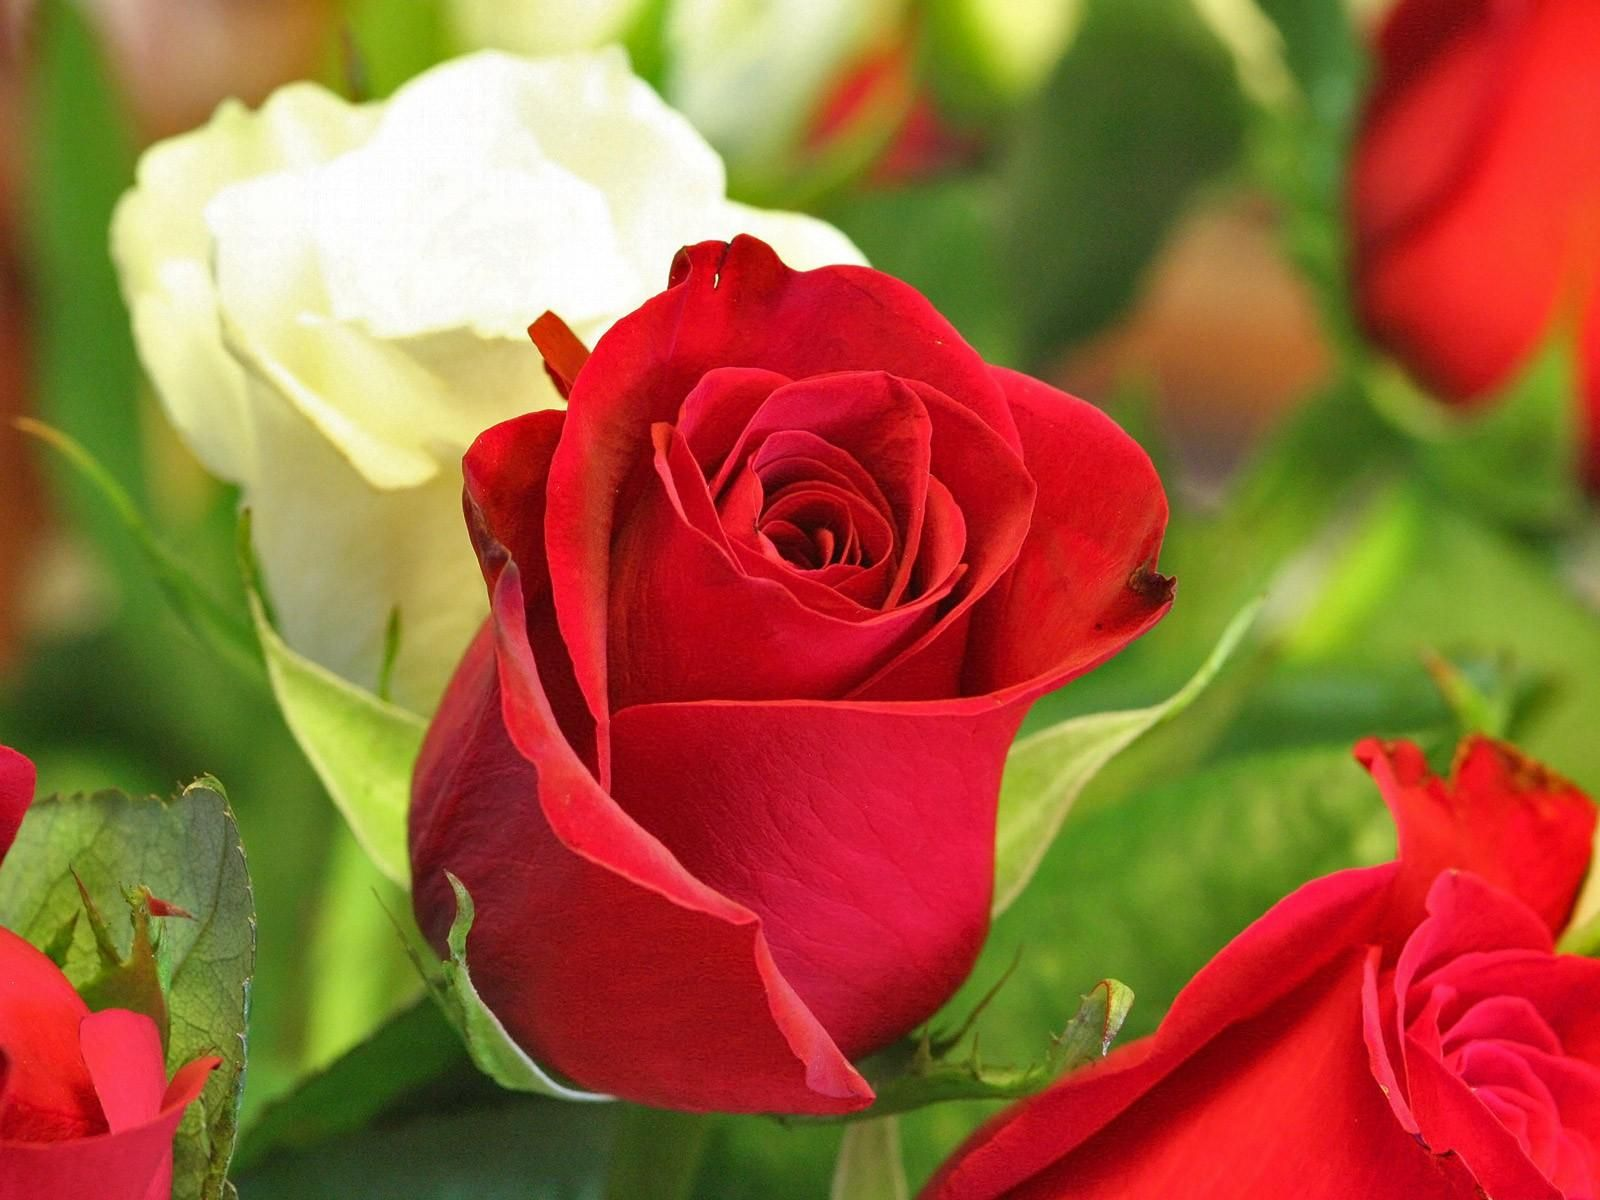 Red Rose Wallpaper Free Download In 2020 Rose Flower Wallpaper Rose Wallpaper Rose Images